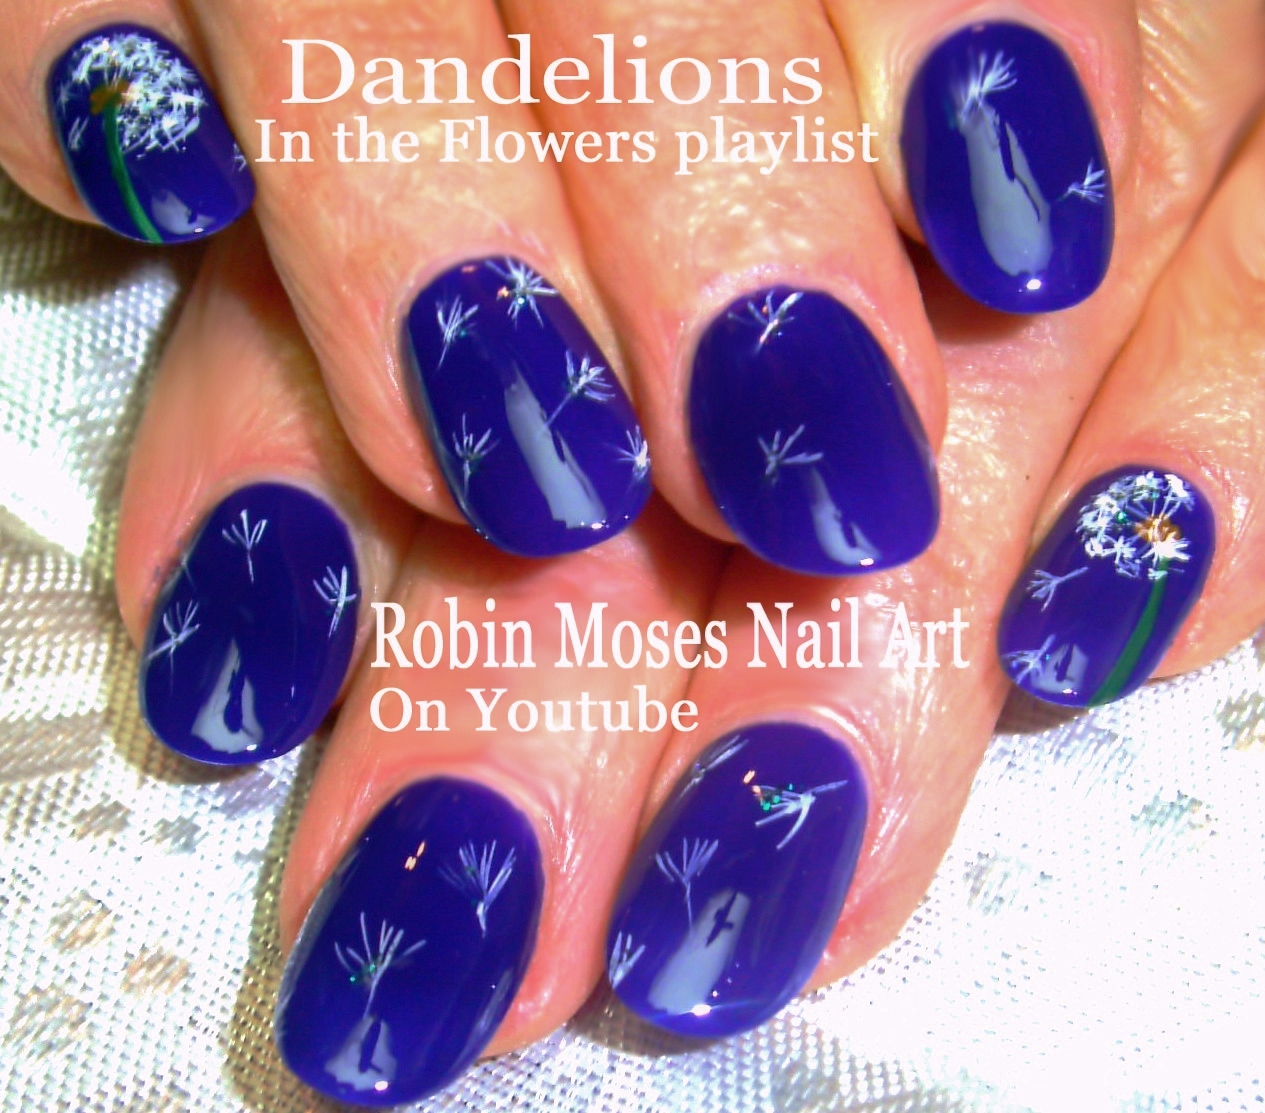 Nail Art By Robin Moses Navy Nail Art Filled With Dandelion Wishes